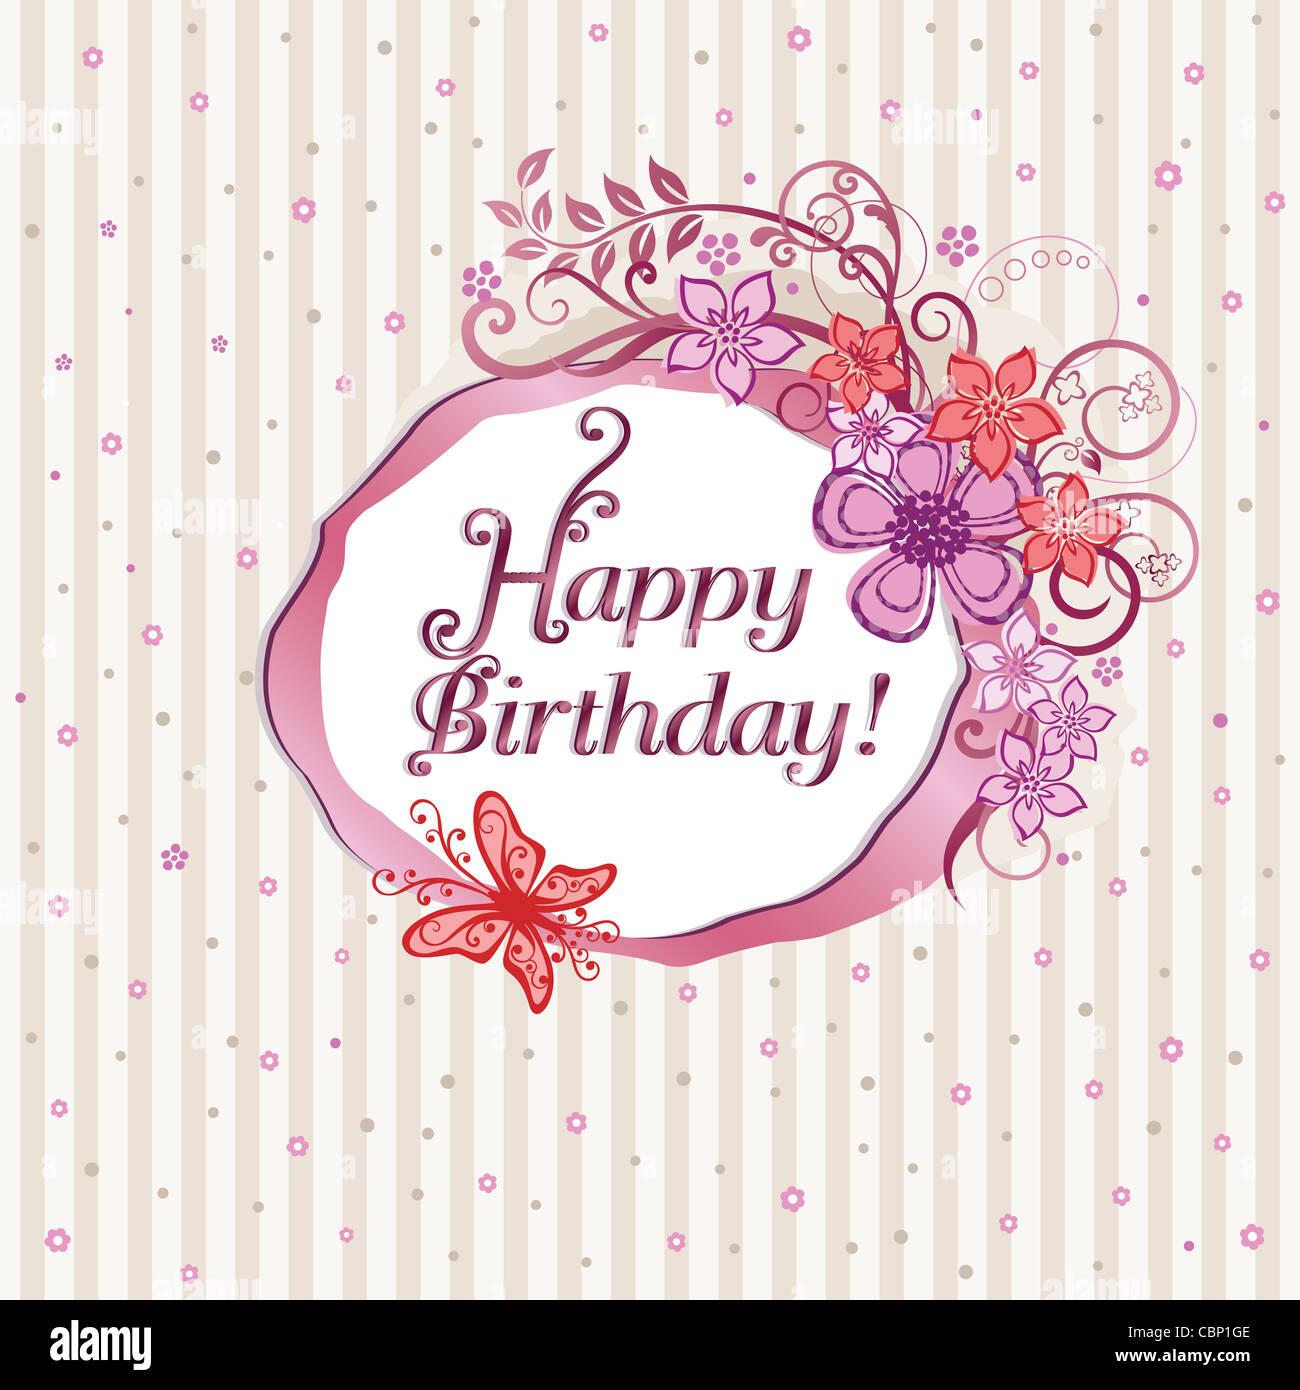 Birthday card design online etamemibawa birthday card design online pink flowers and butterflies happy birthday card design bookmarktalkfo Images